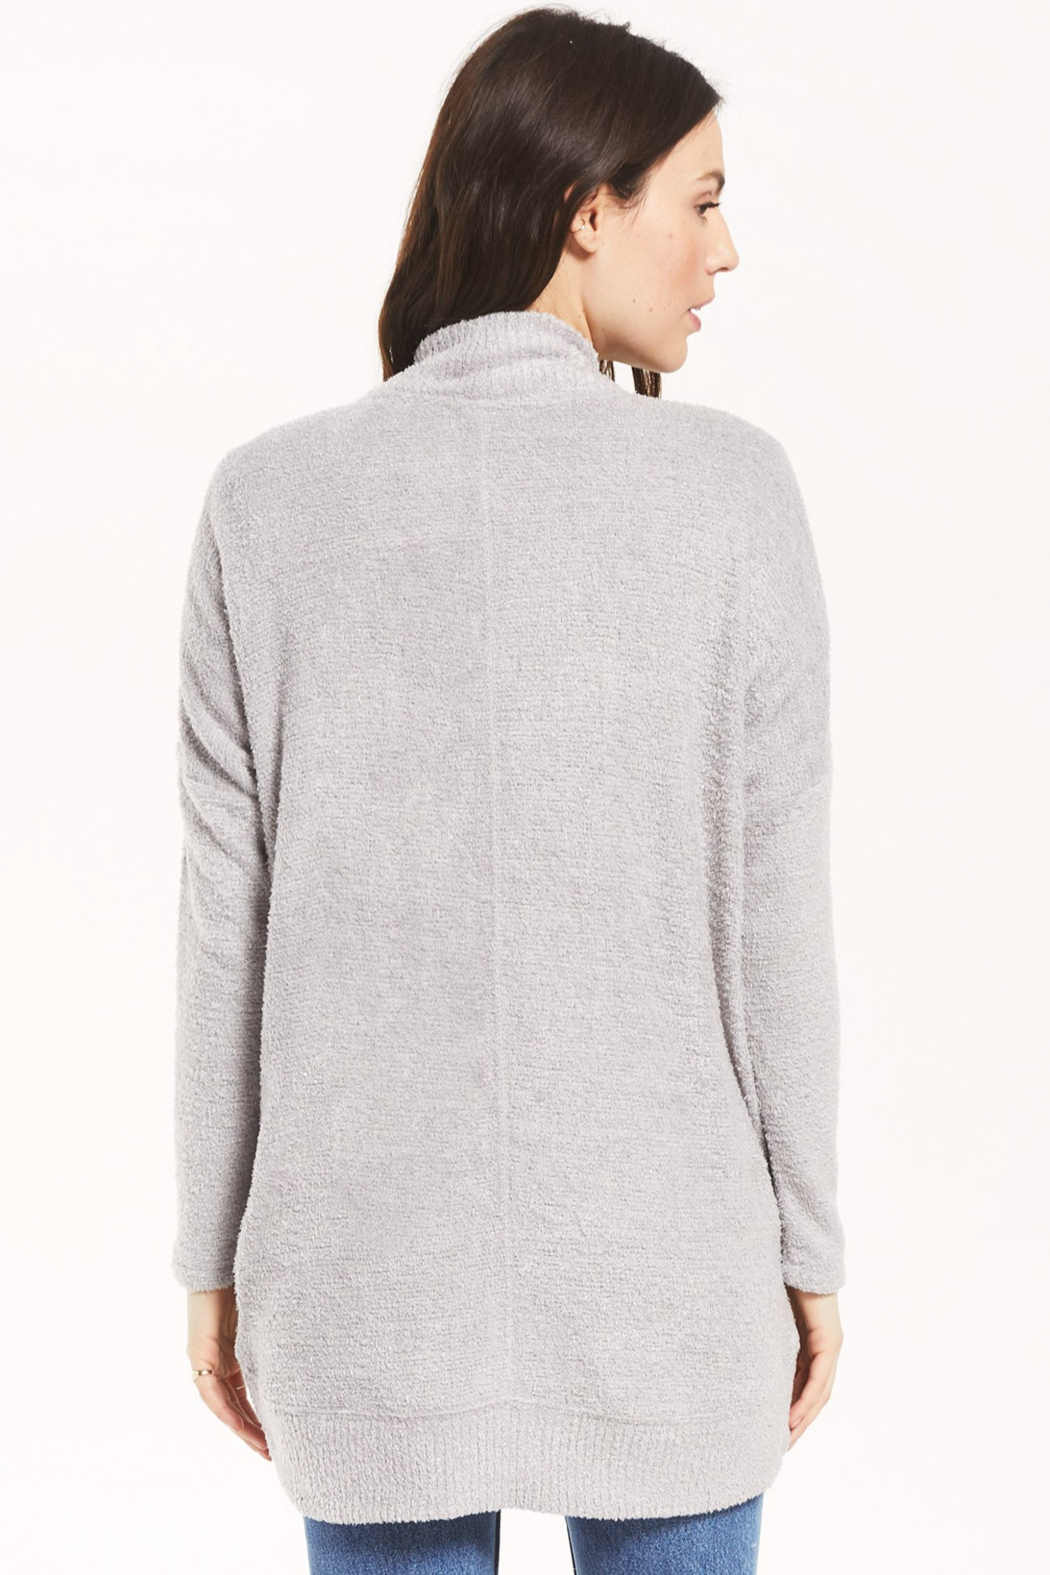 z supply Kaye Feather Cardigan - Back Cropped Image